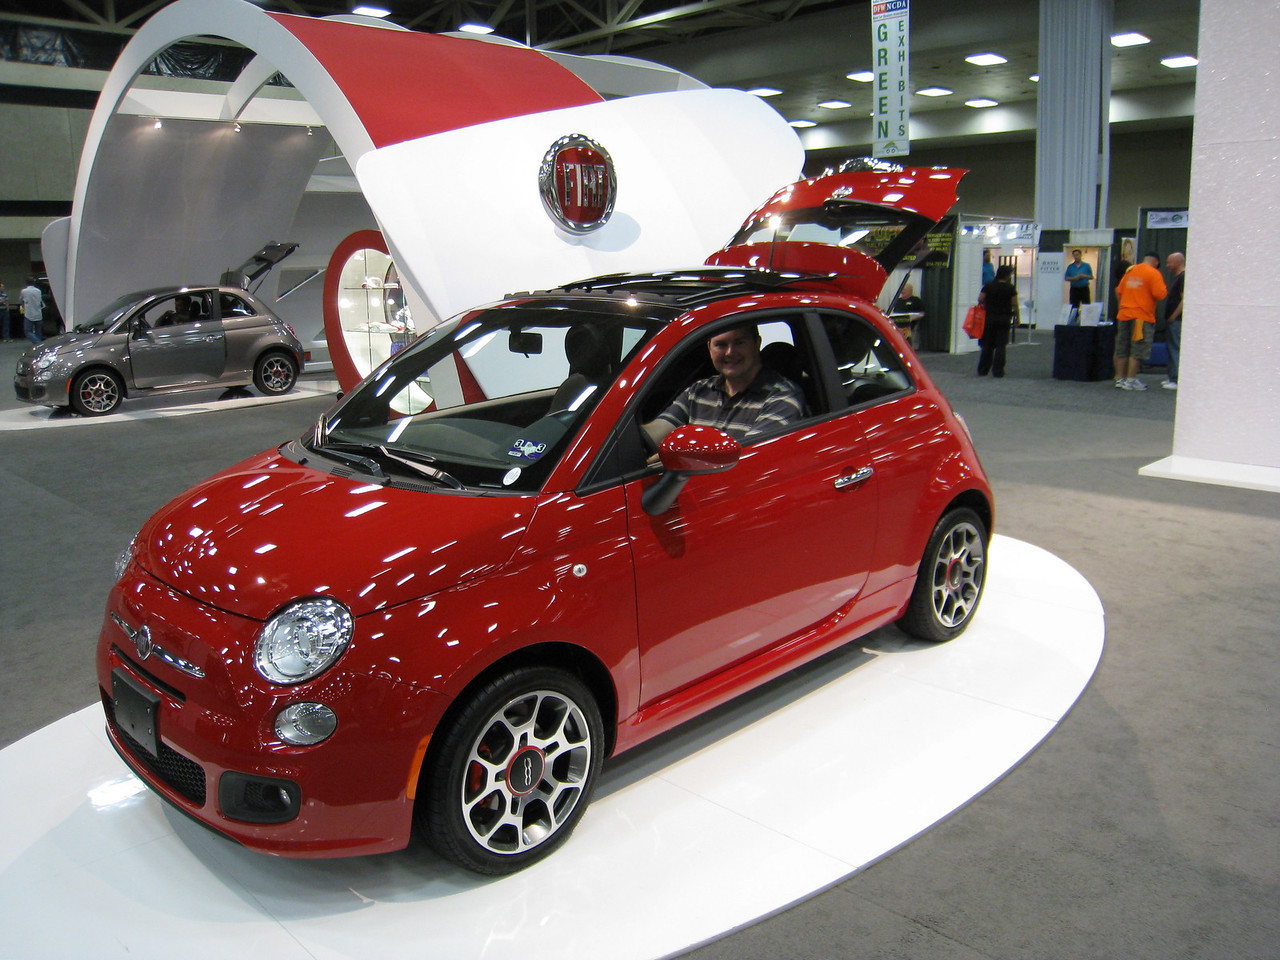 Sean and Jason in the 2012 Fiat 500